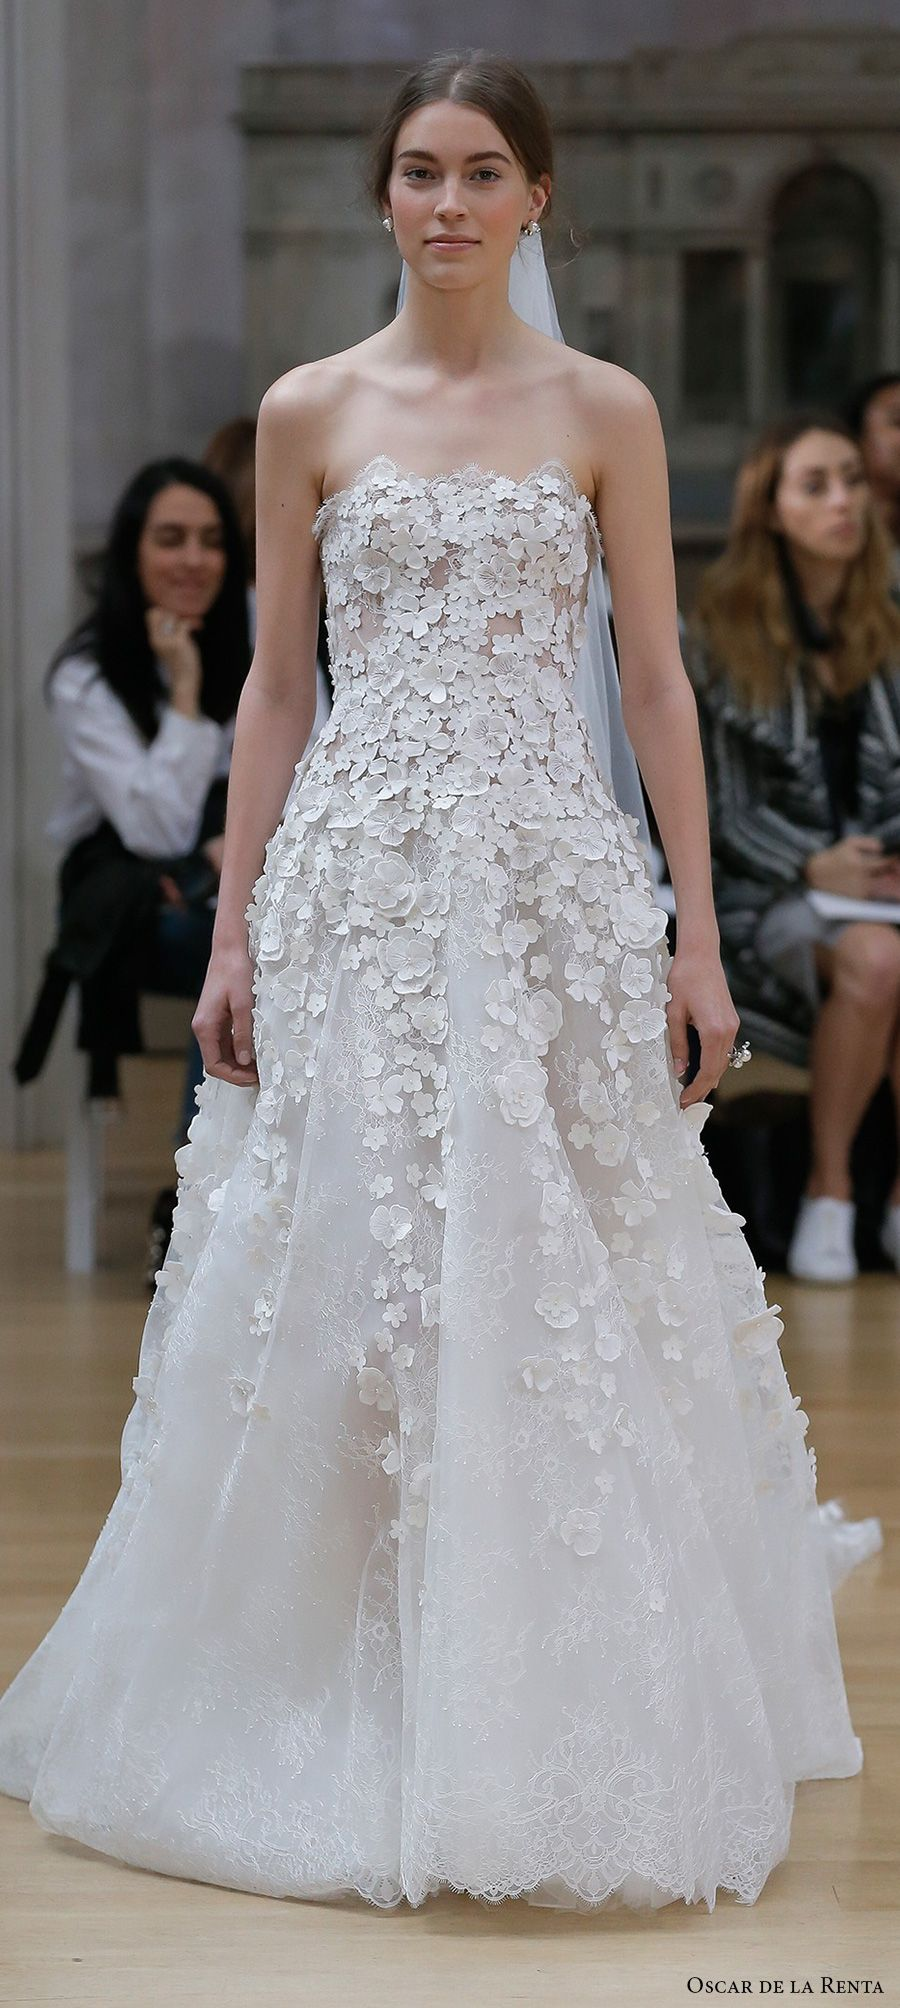 oscar de la renta spring 2018 bridal strapless straight across neckline heavily embellished bodice romantic a line wedding dress chapel train (161) mv -- Oscar de la Renta Spring 2018 Wedding Dresses #wedding #bridal #weddingdress